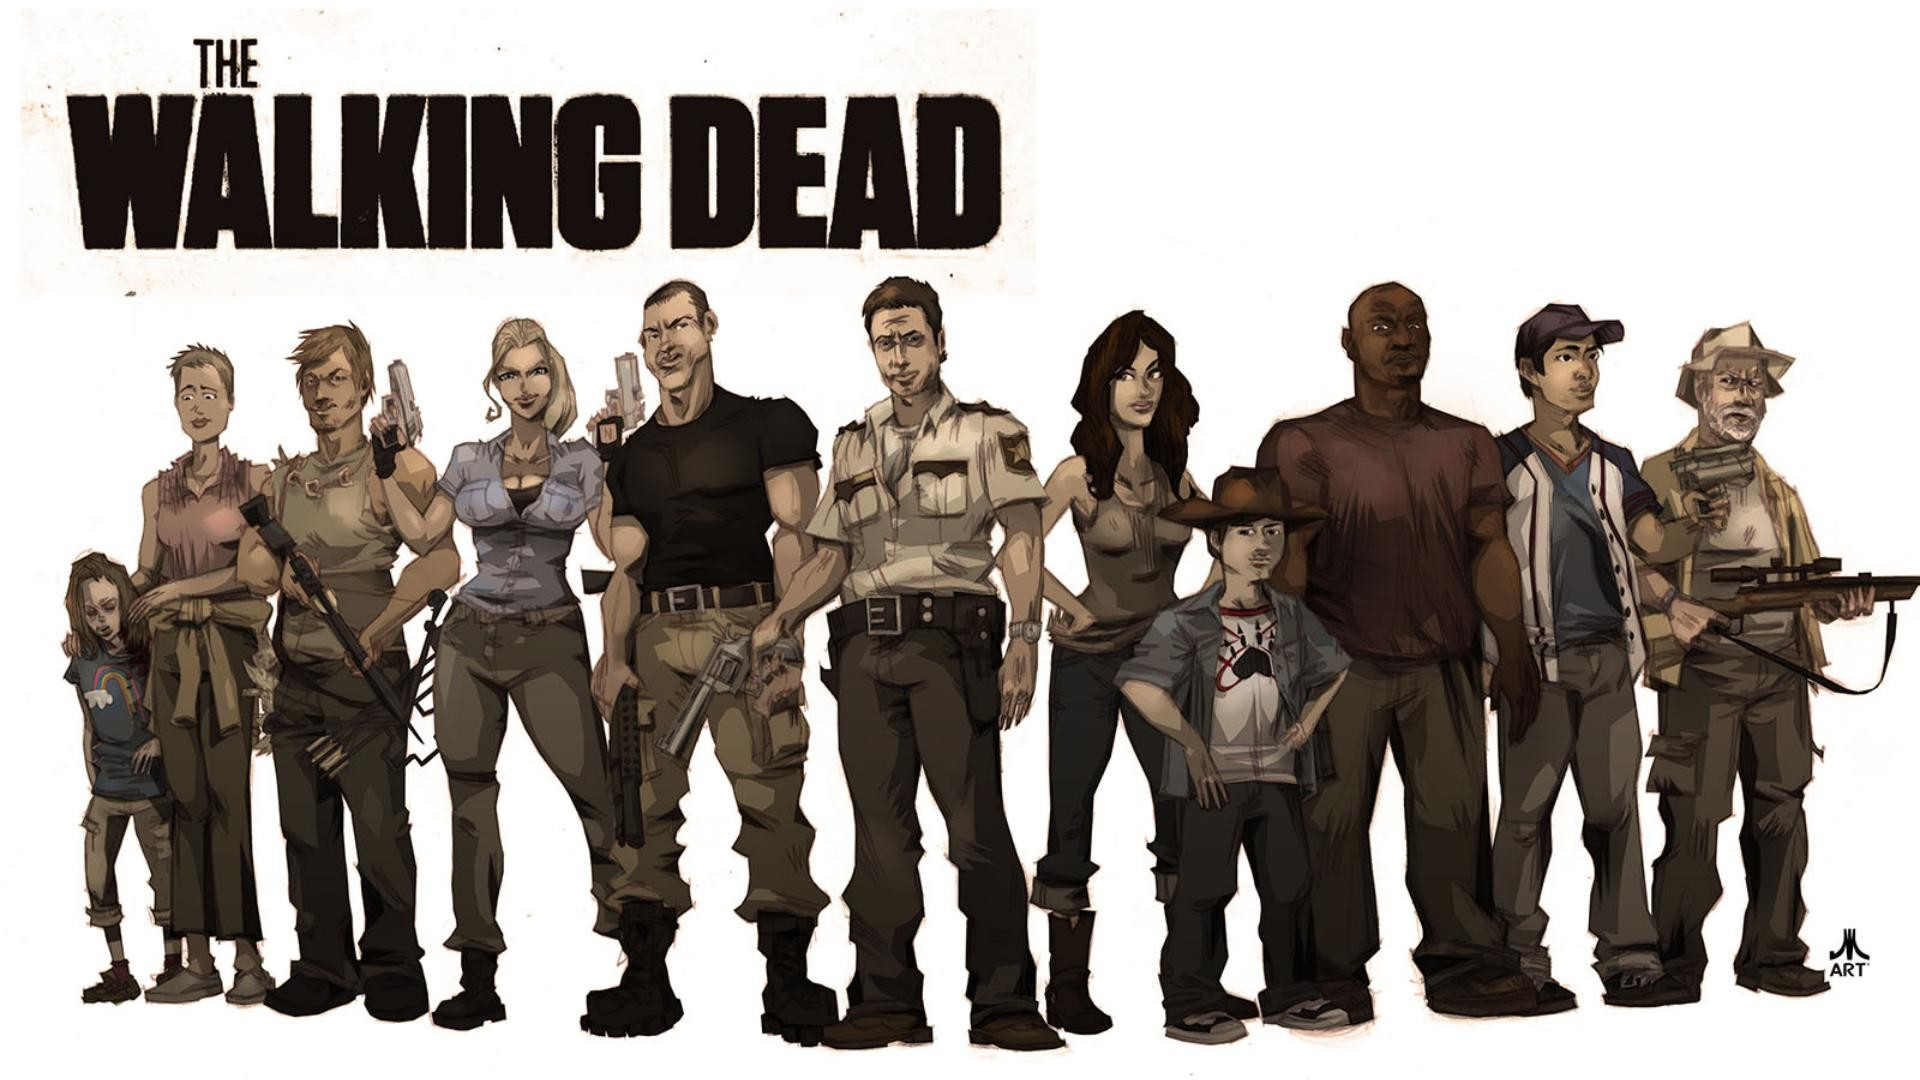 Movie The Walking Dead Wallpaper High Quality 1080x1920px – Horror .